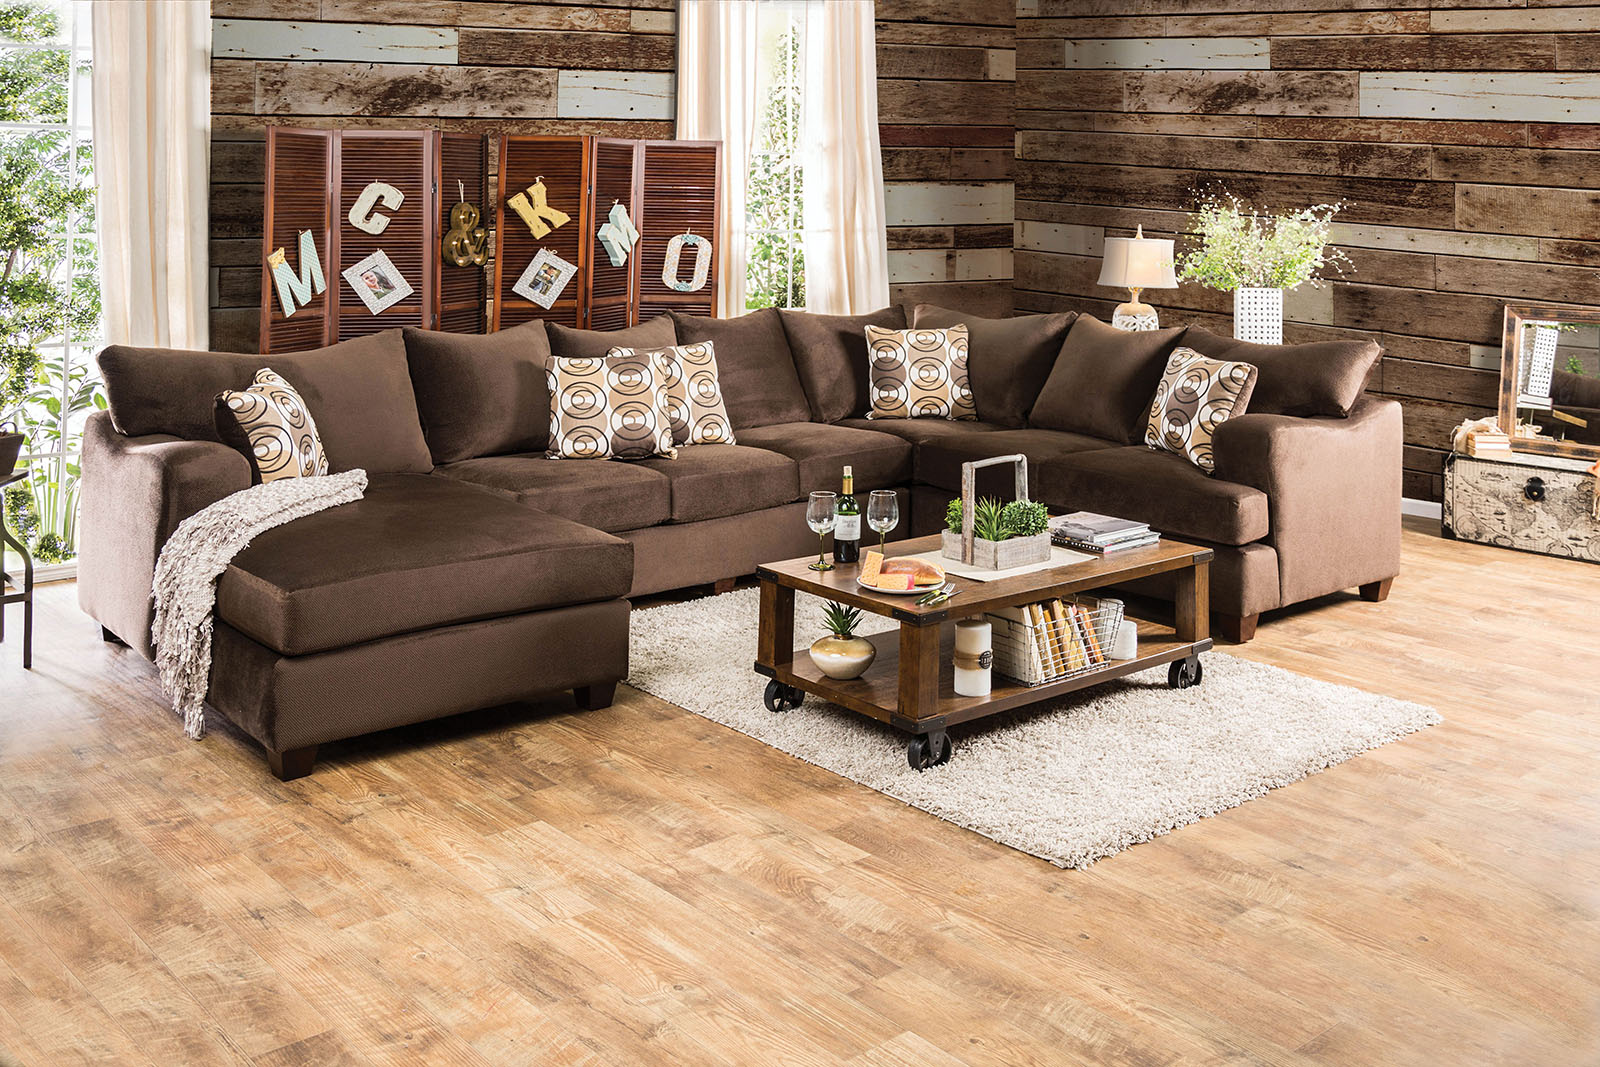 Wessington Chocolate Transitional Modern English-arm Style Fabric Sectional